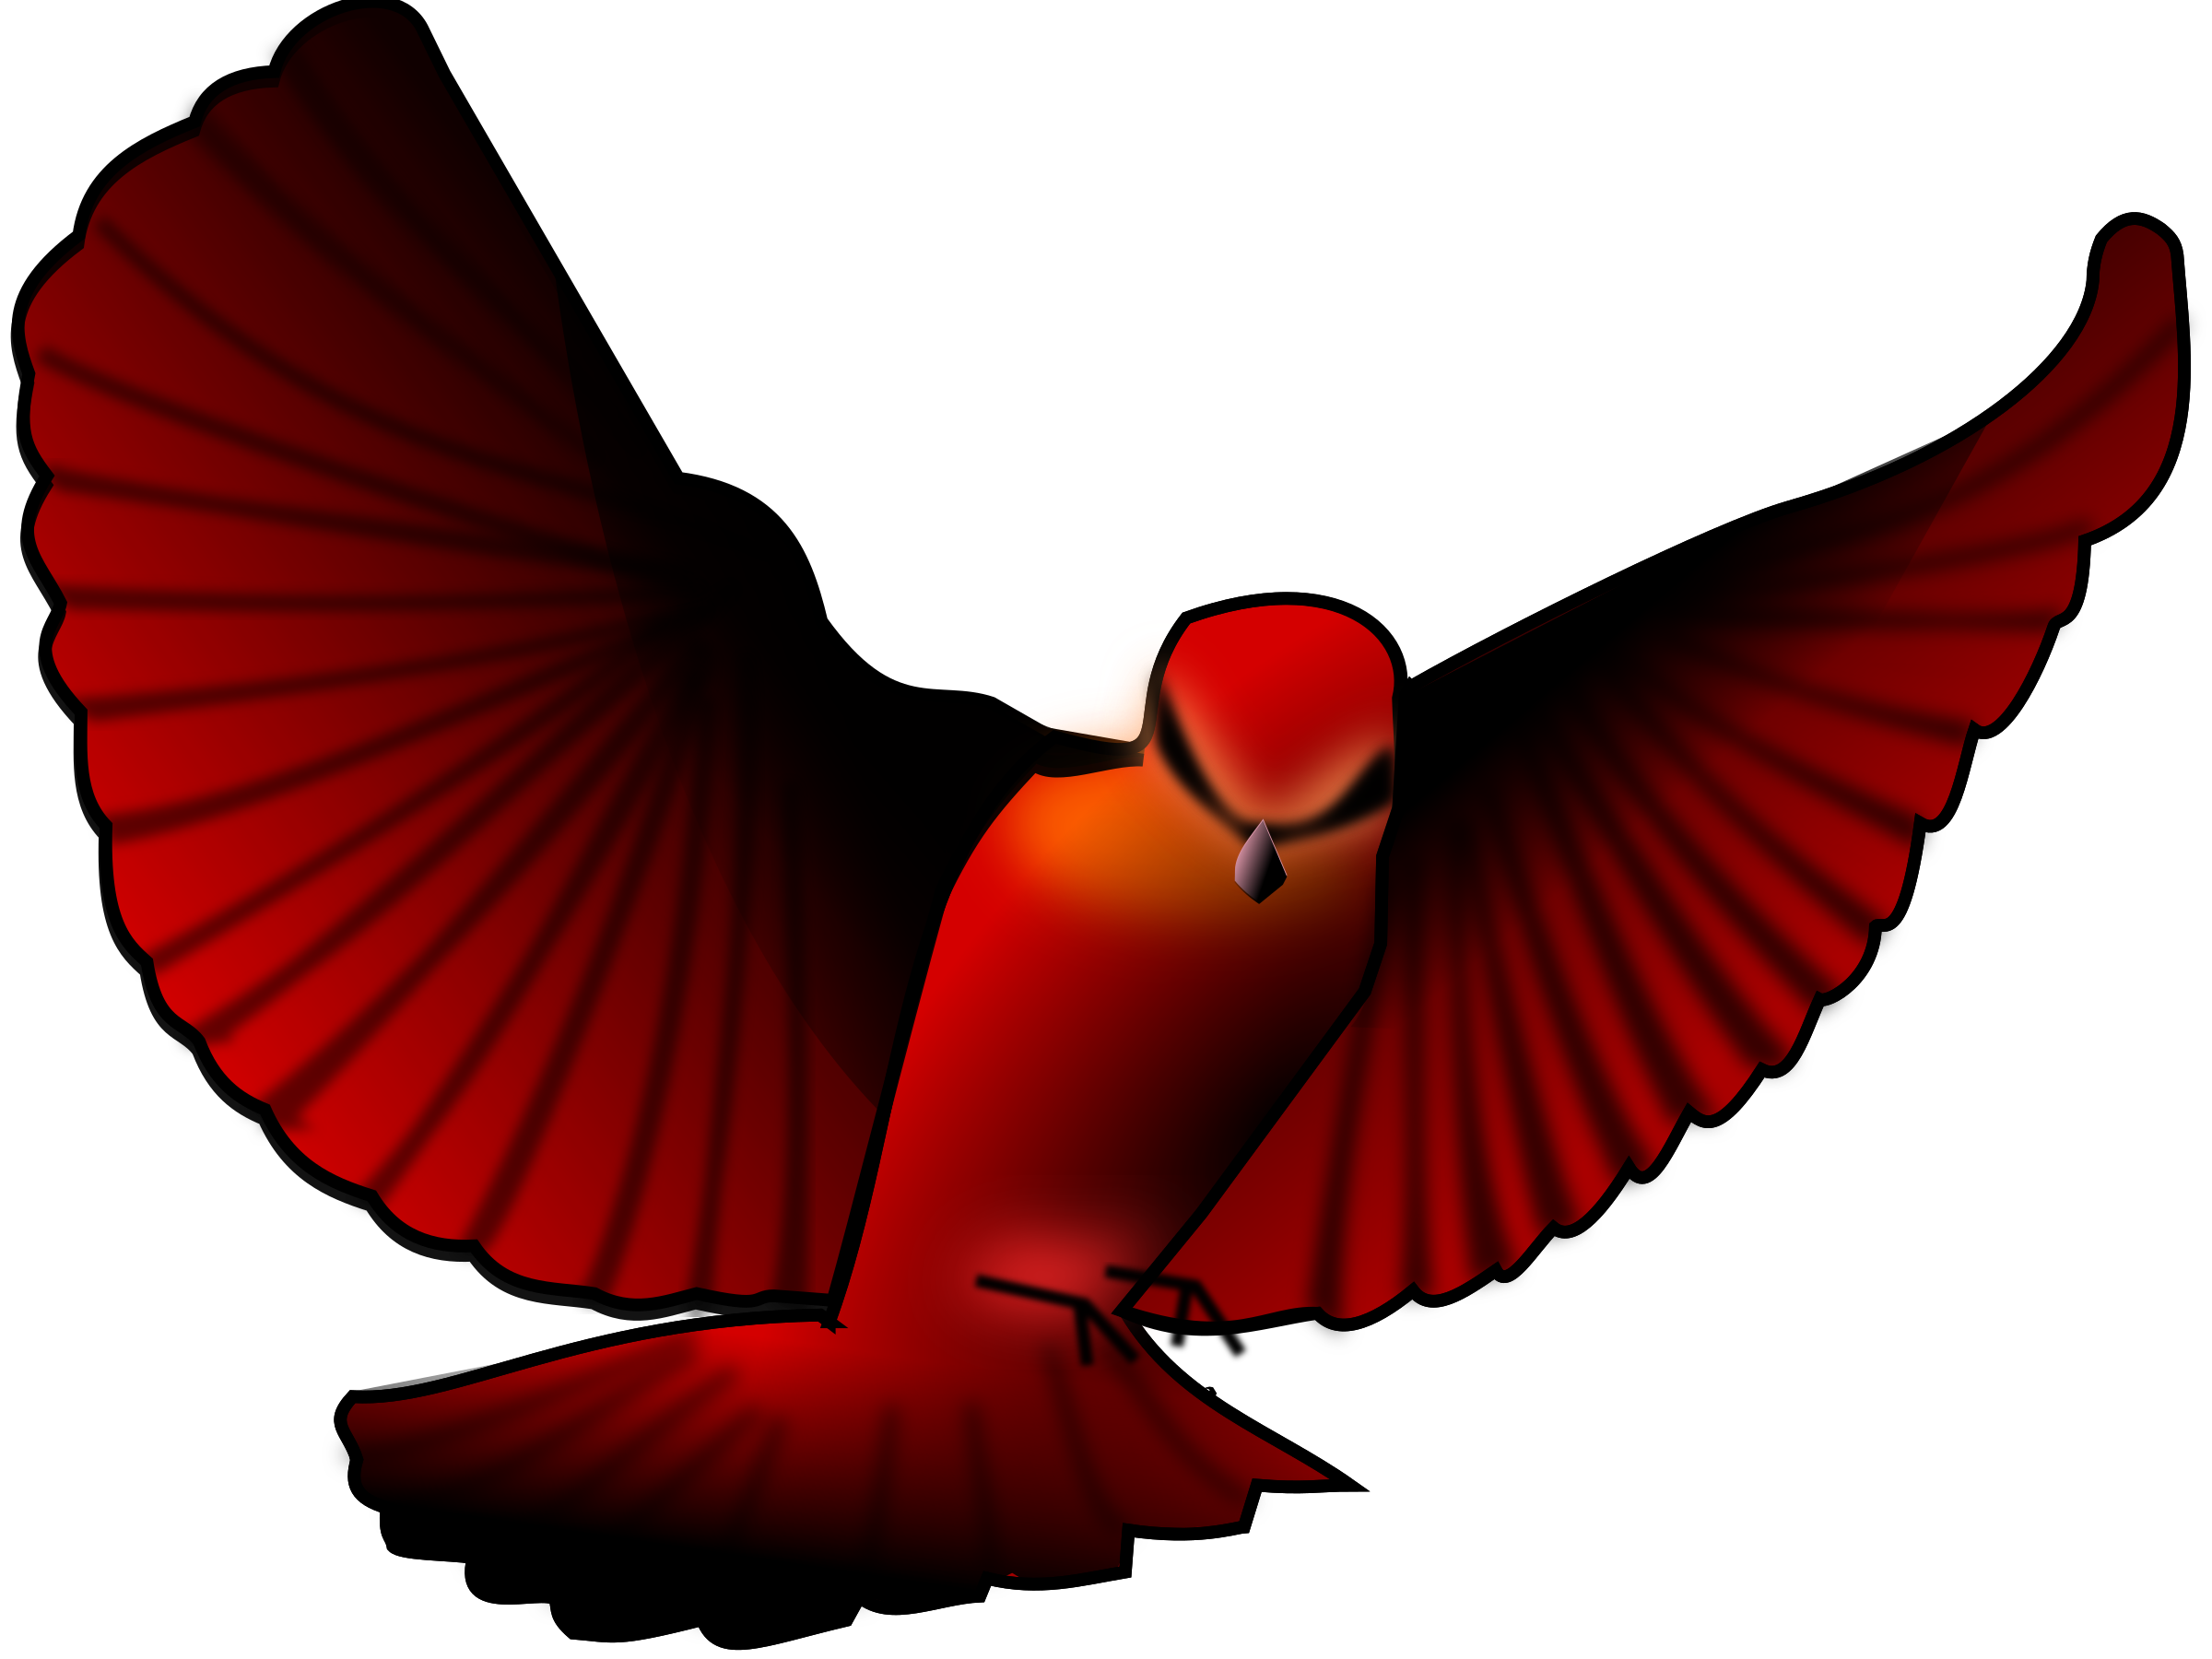 Red_bird by asrafil